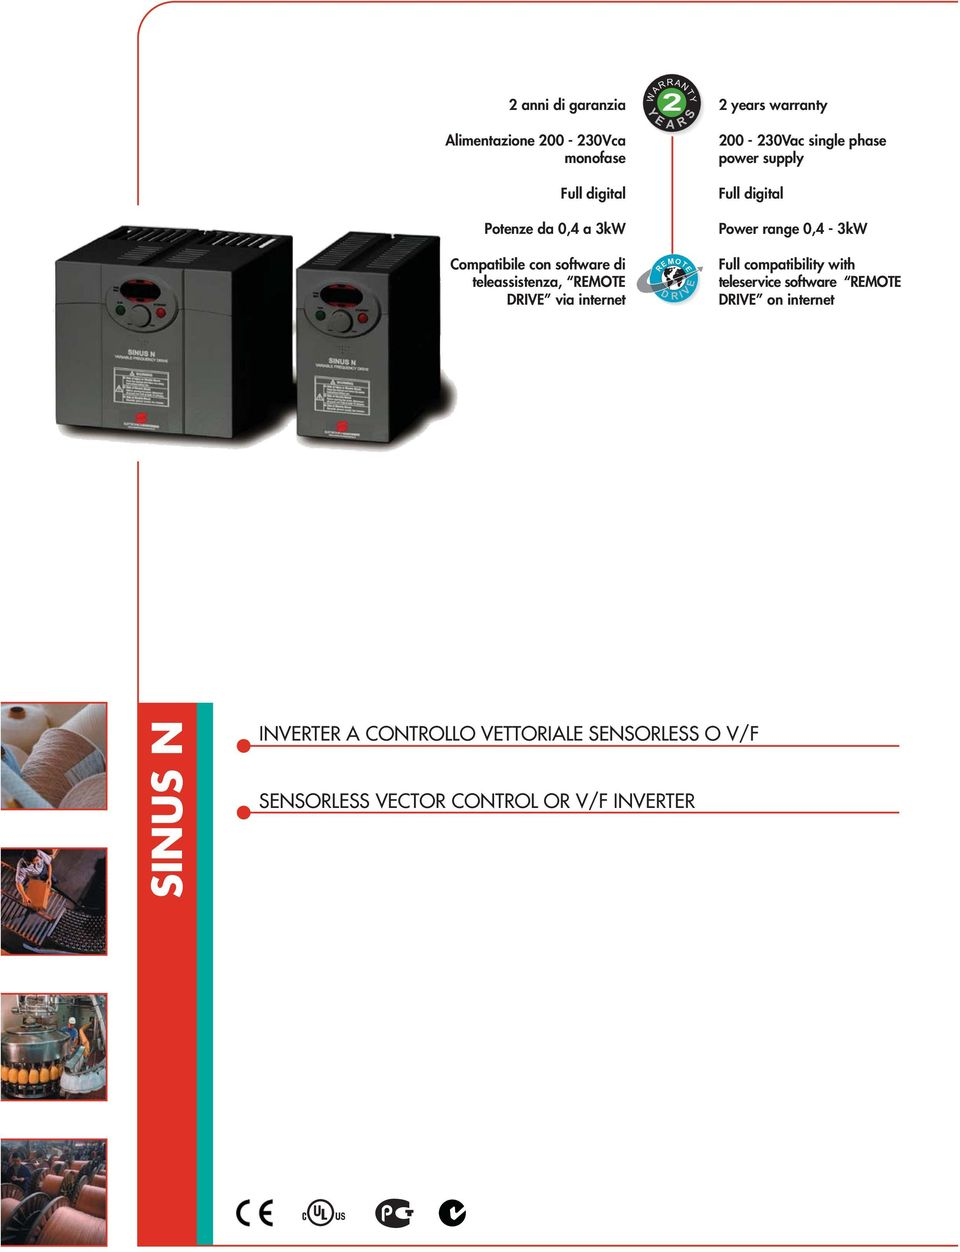 200-230Vac single phase power supply Full digital Power range 0,4-3kW Full compatibility with teleservice